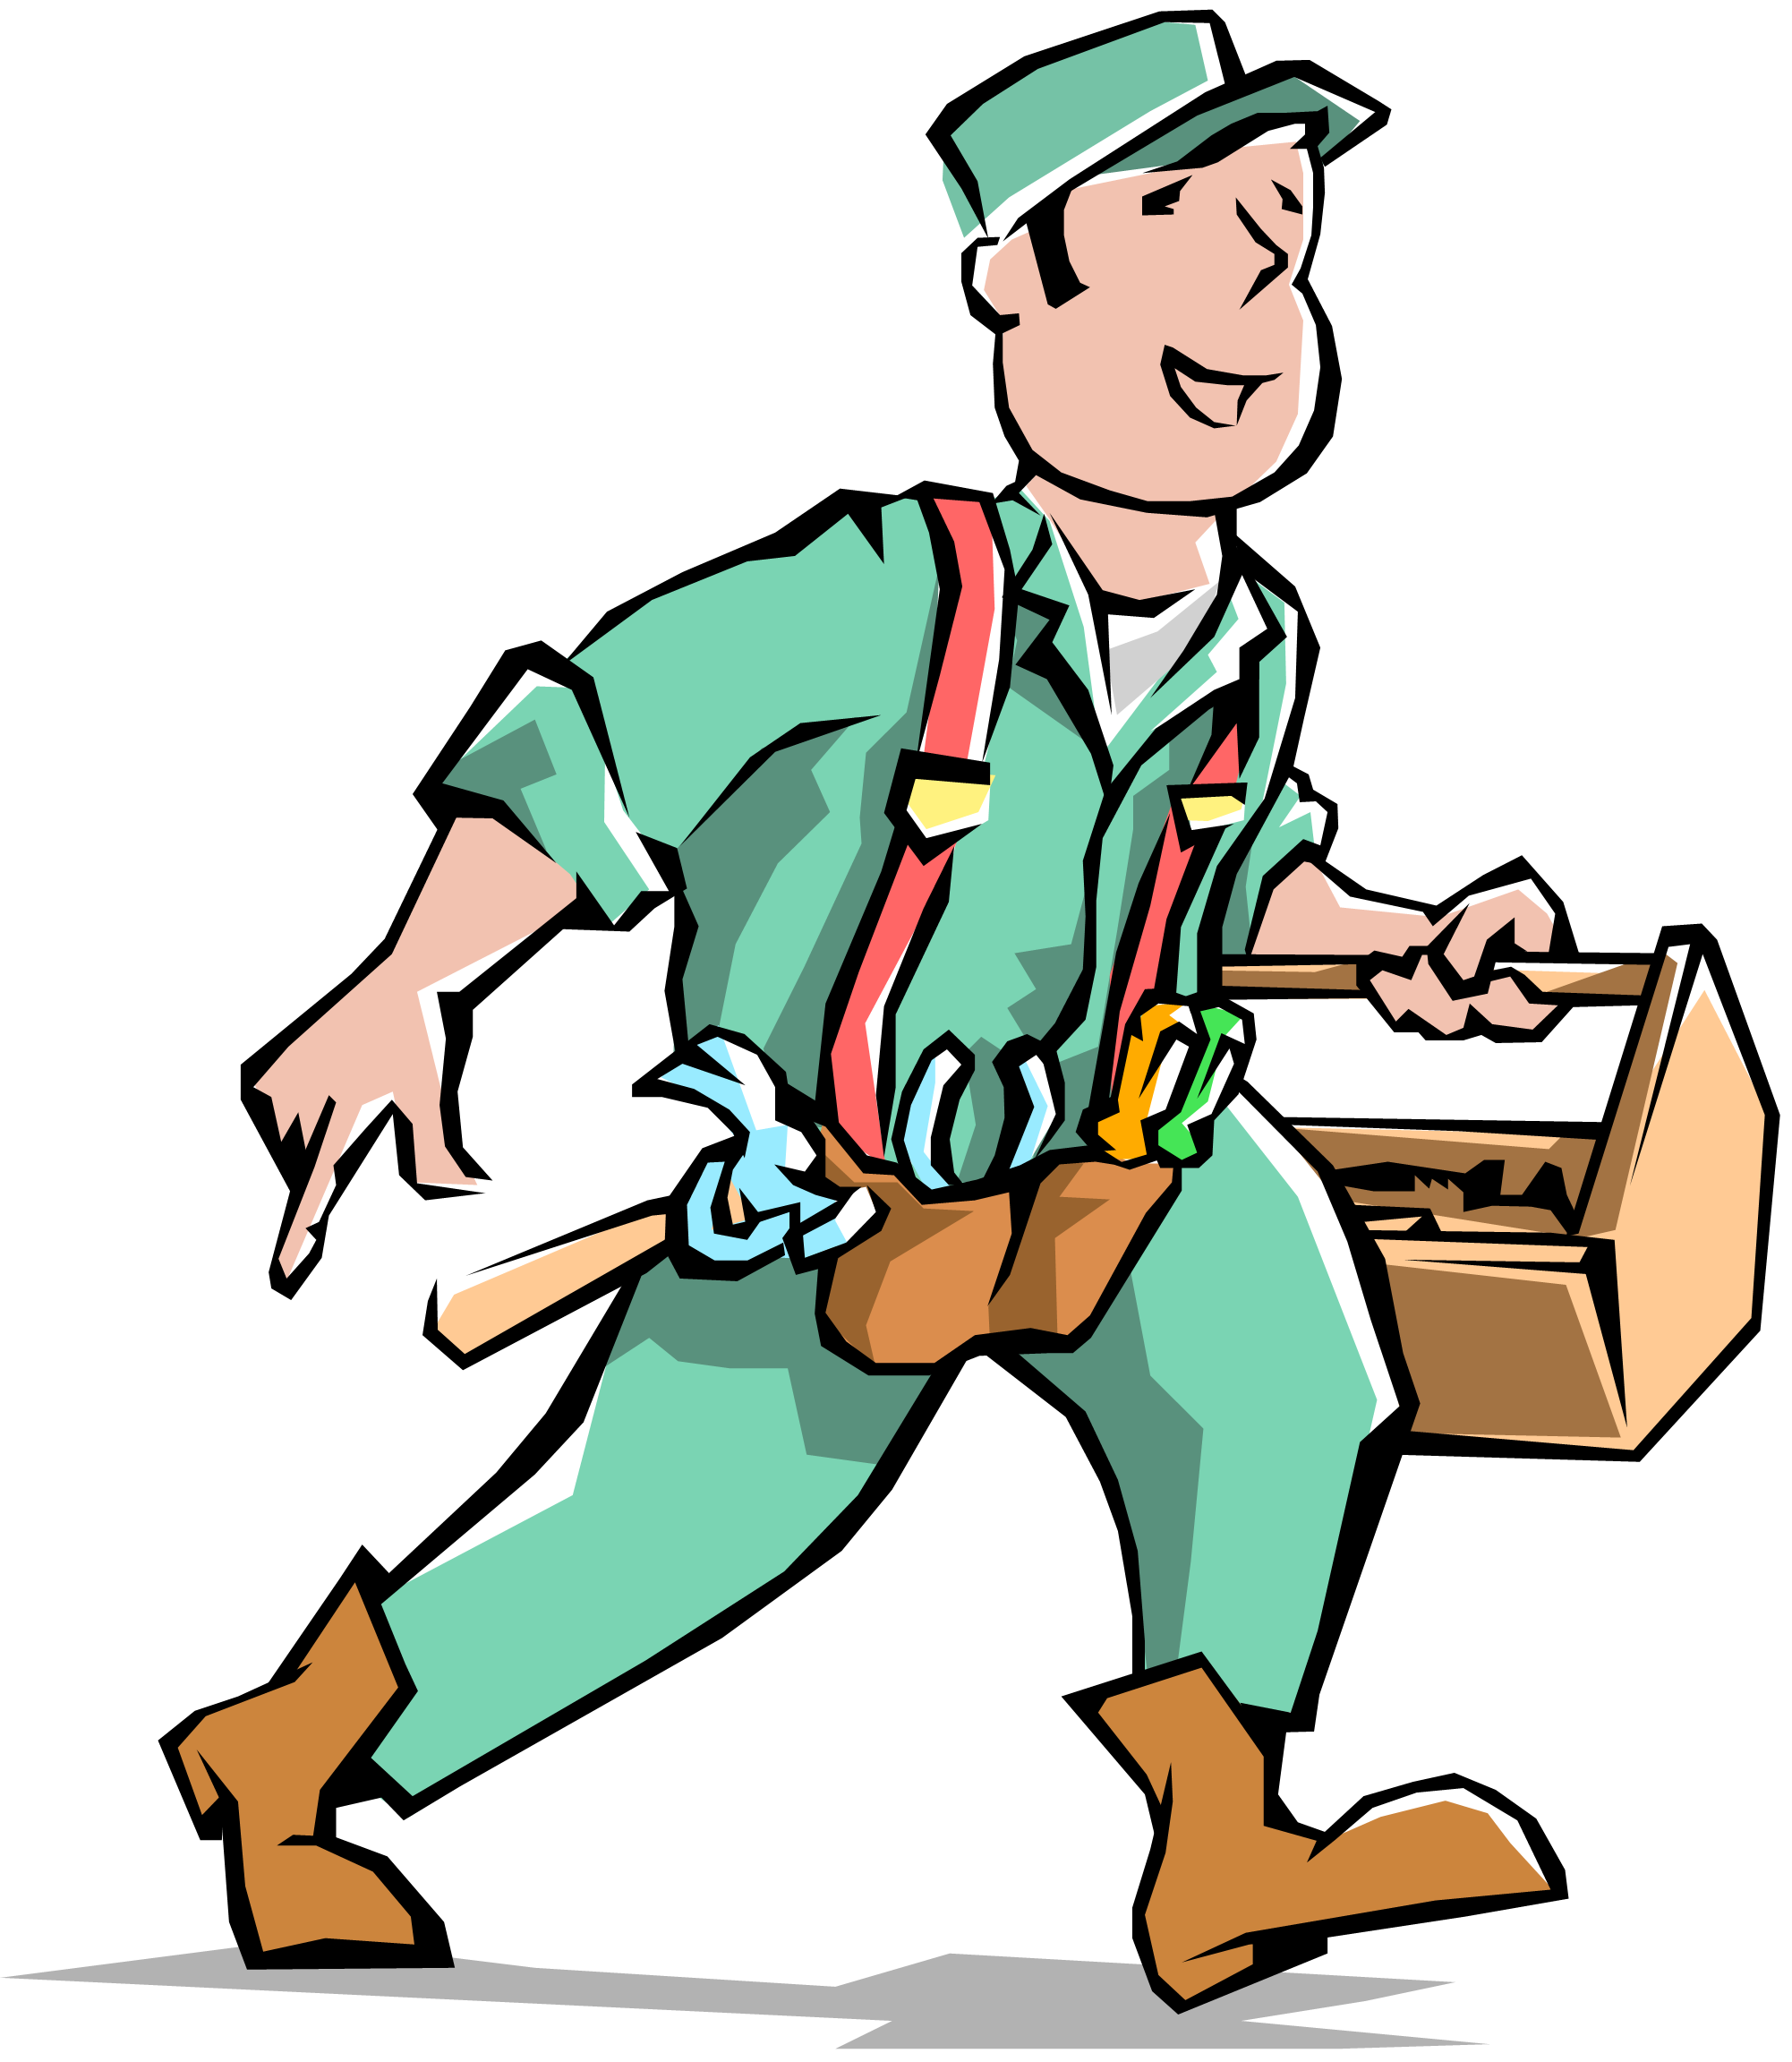 Handyman Clipart Handy Man Clipartall-Handyman clipart handy man clipartall-7